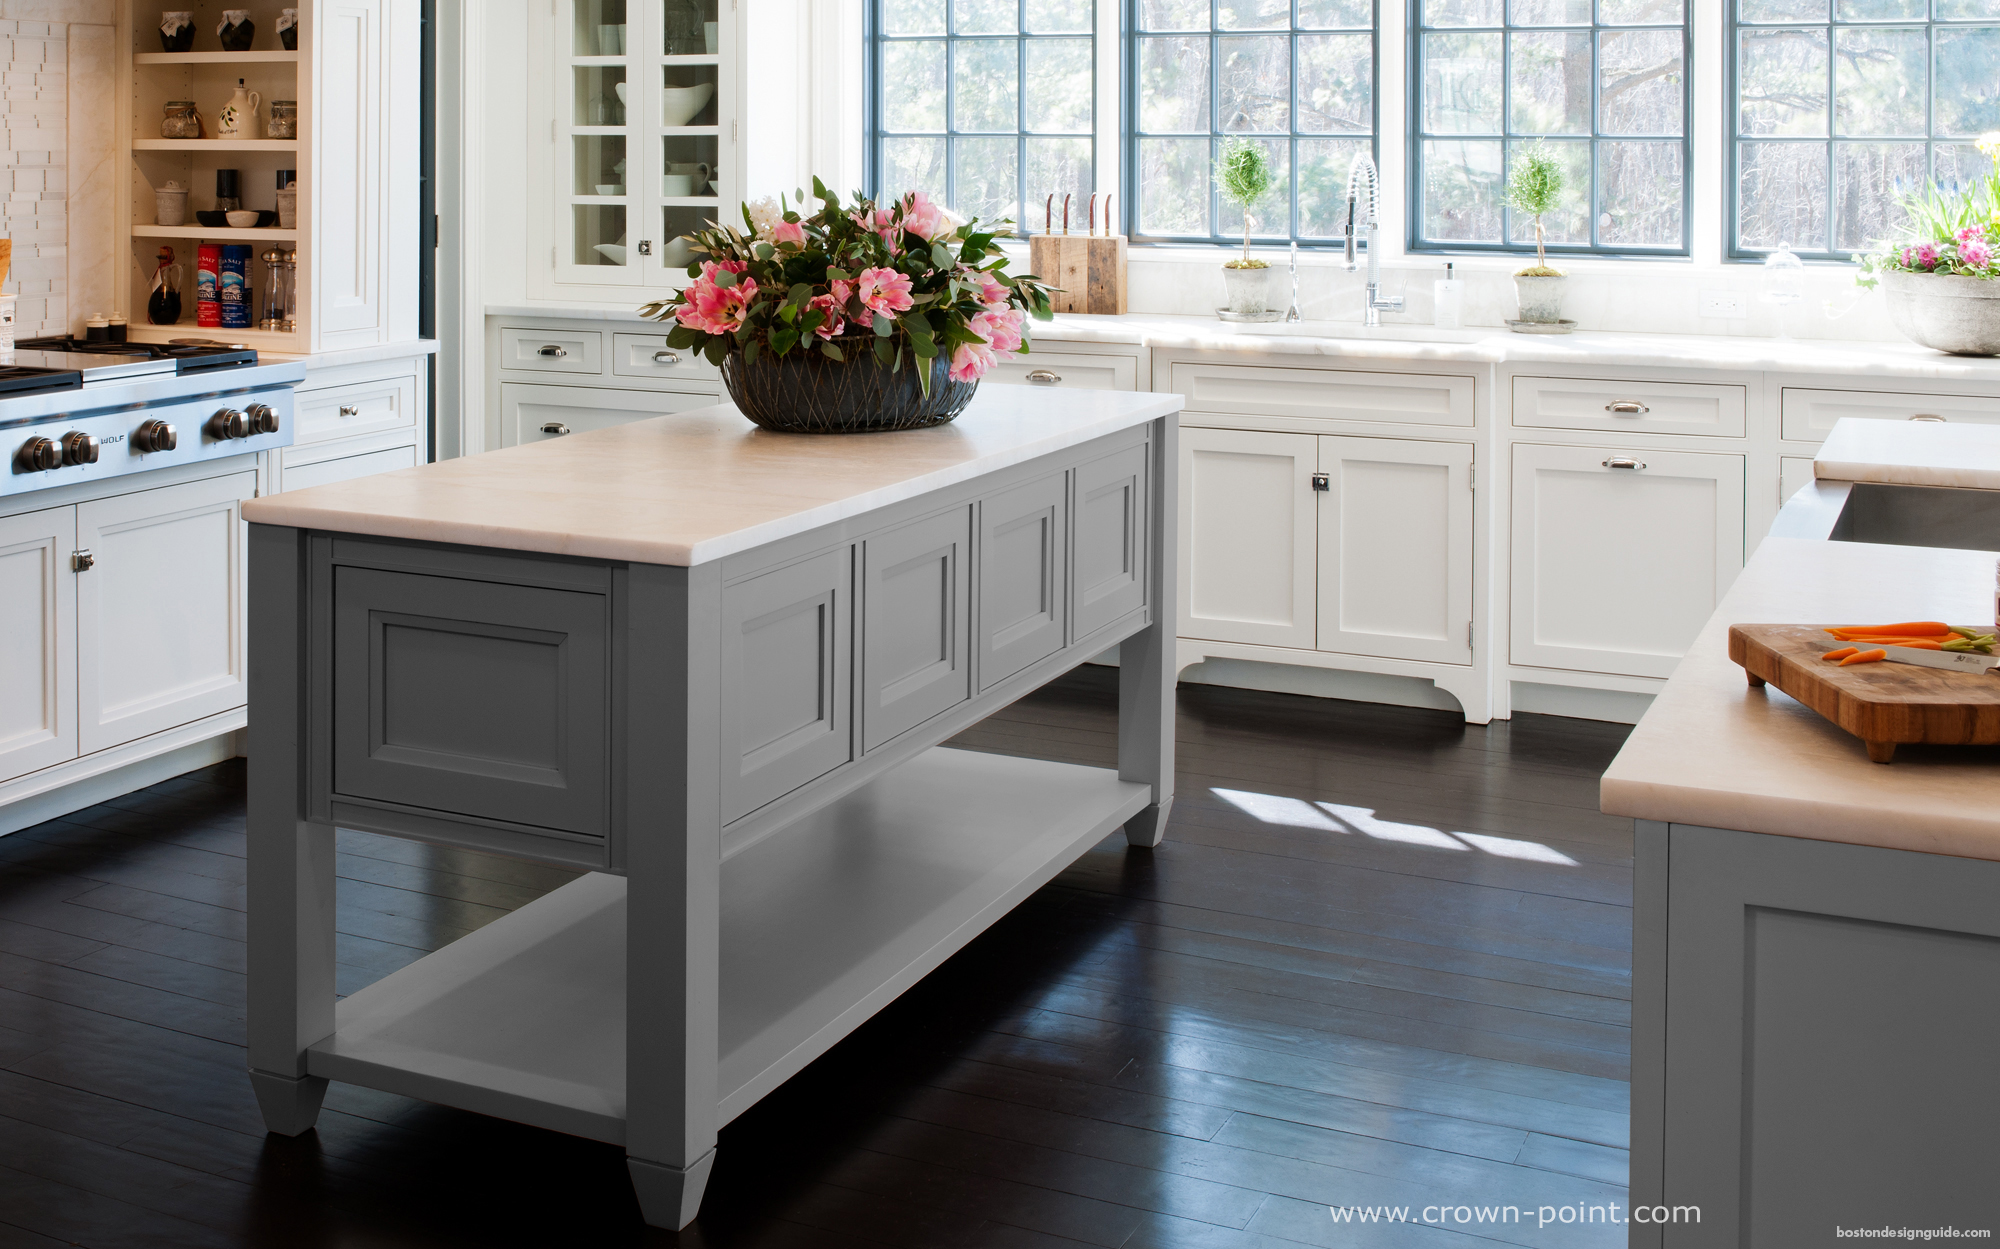 Crown Point Cabinetry Boston Design Guide